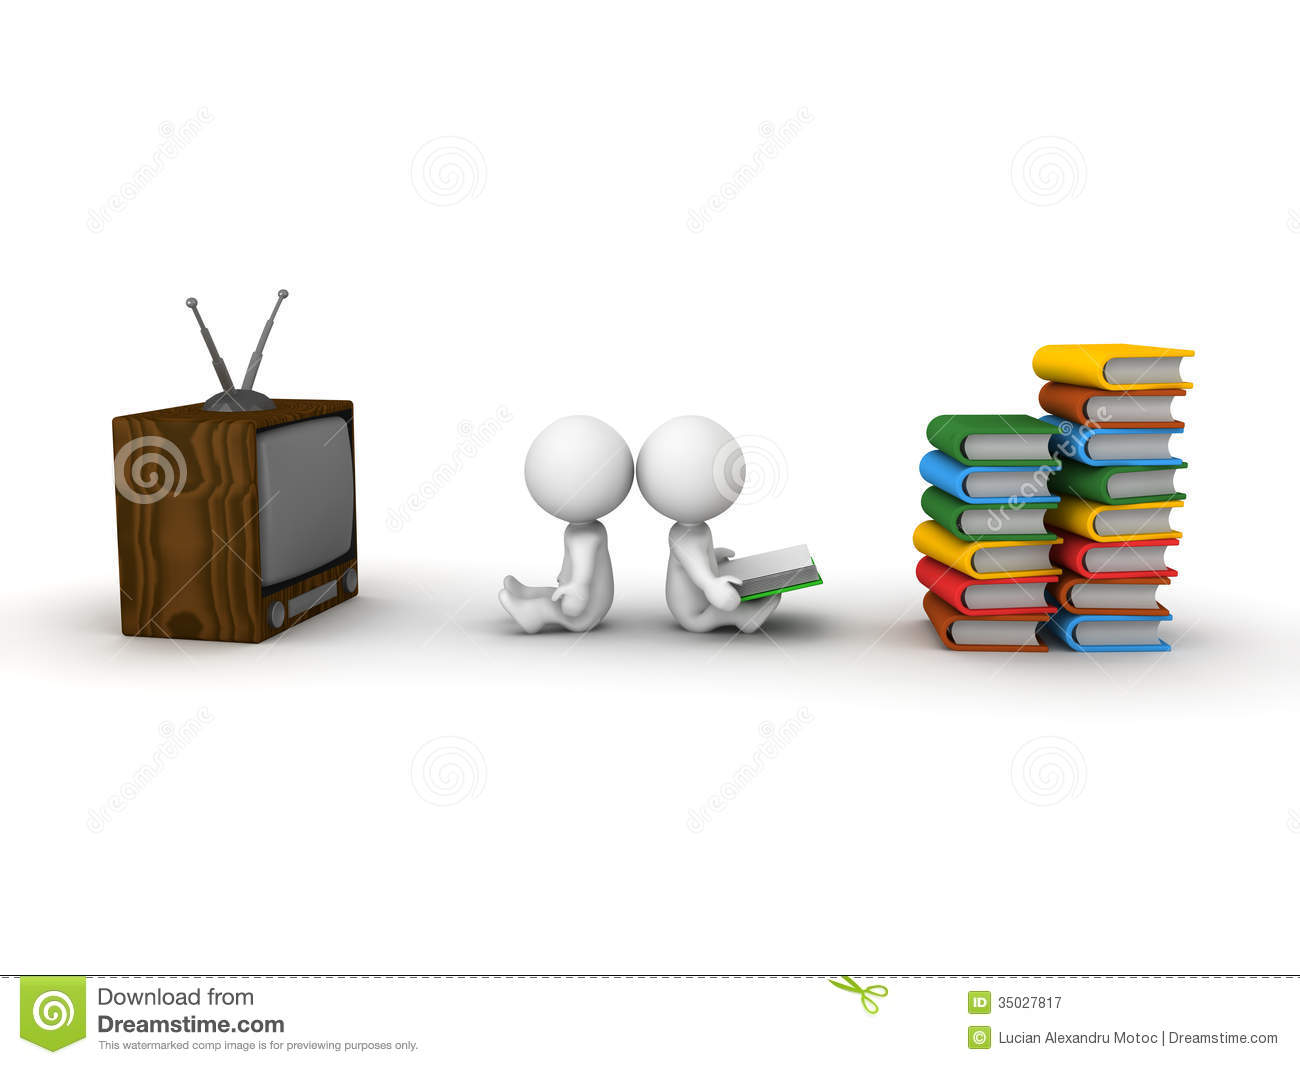 essay on watching tv or reading books Both watching tv and reading books have measurable effects on our brain - but which is best for learning, neural connectivity, and stress reduction.